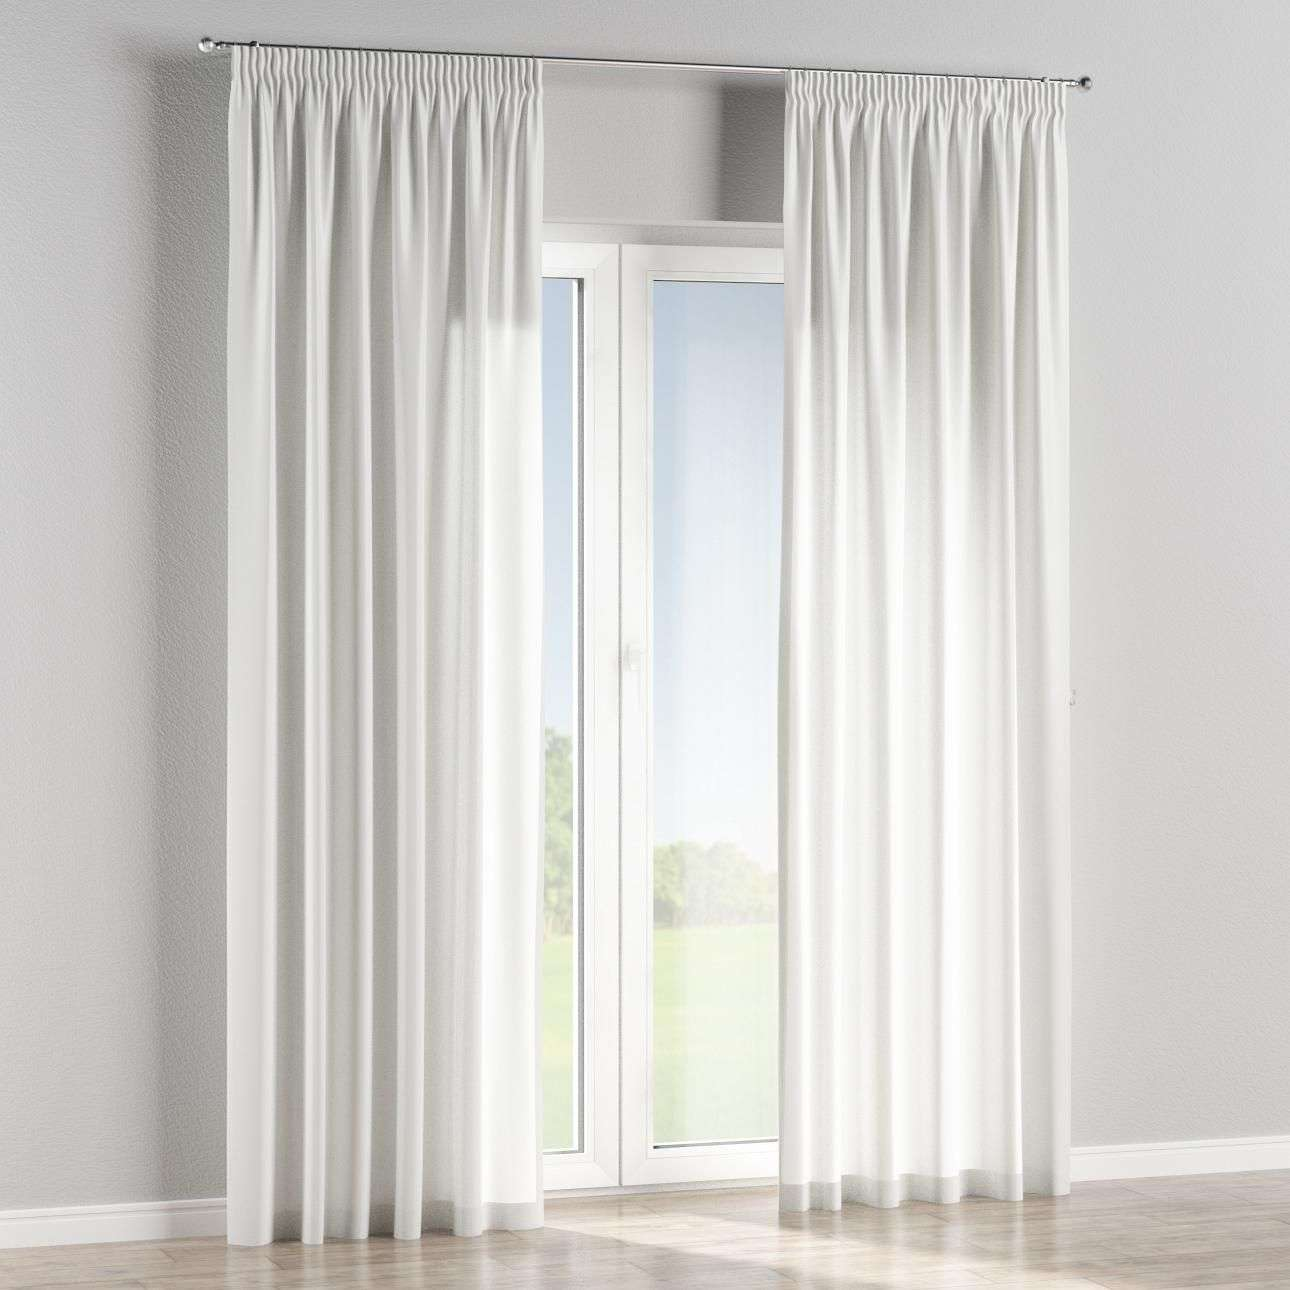 Pencil pleat curtains in collection Rustica, fabric: 138-19